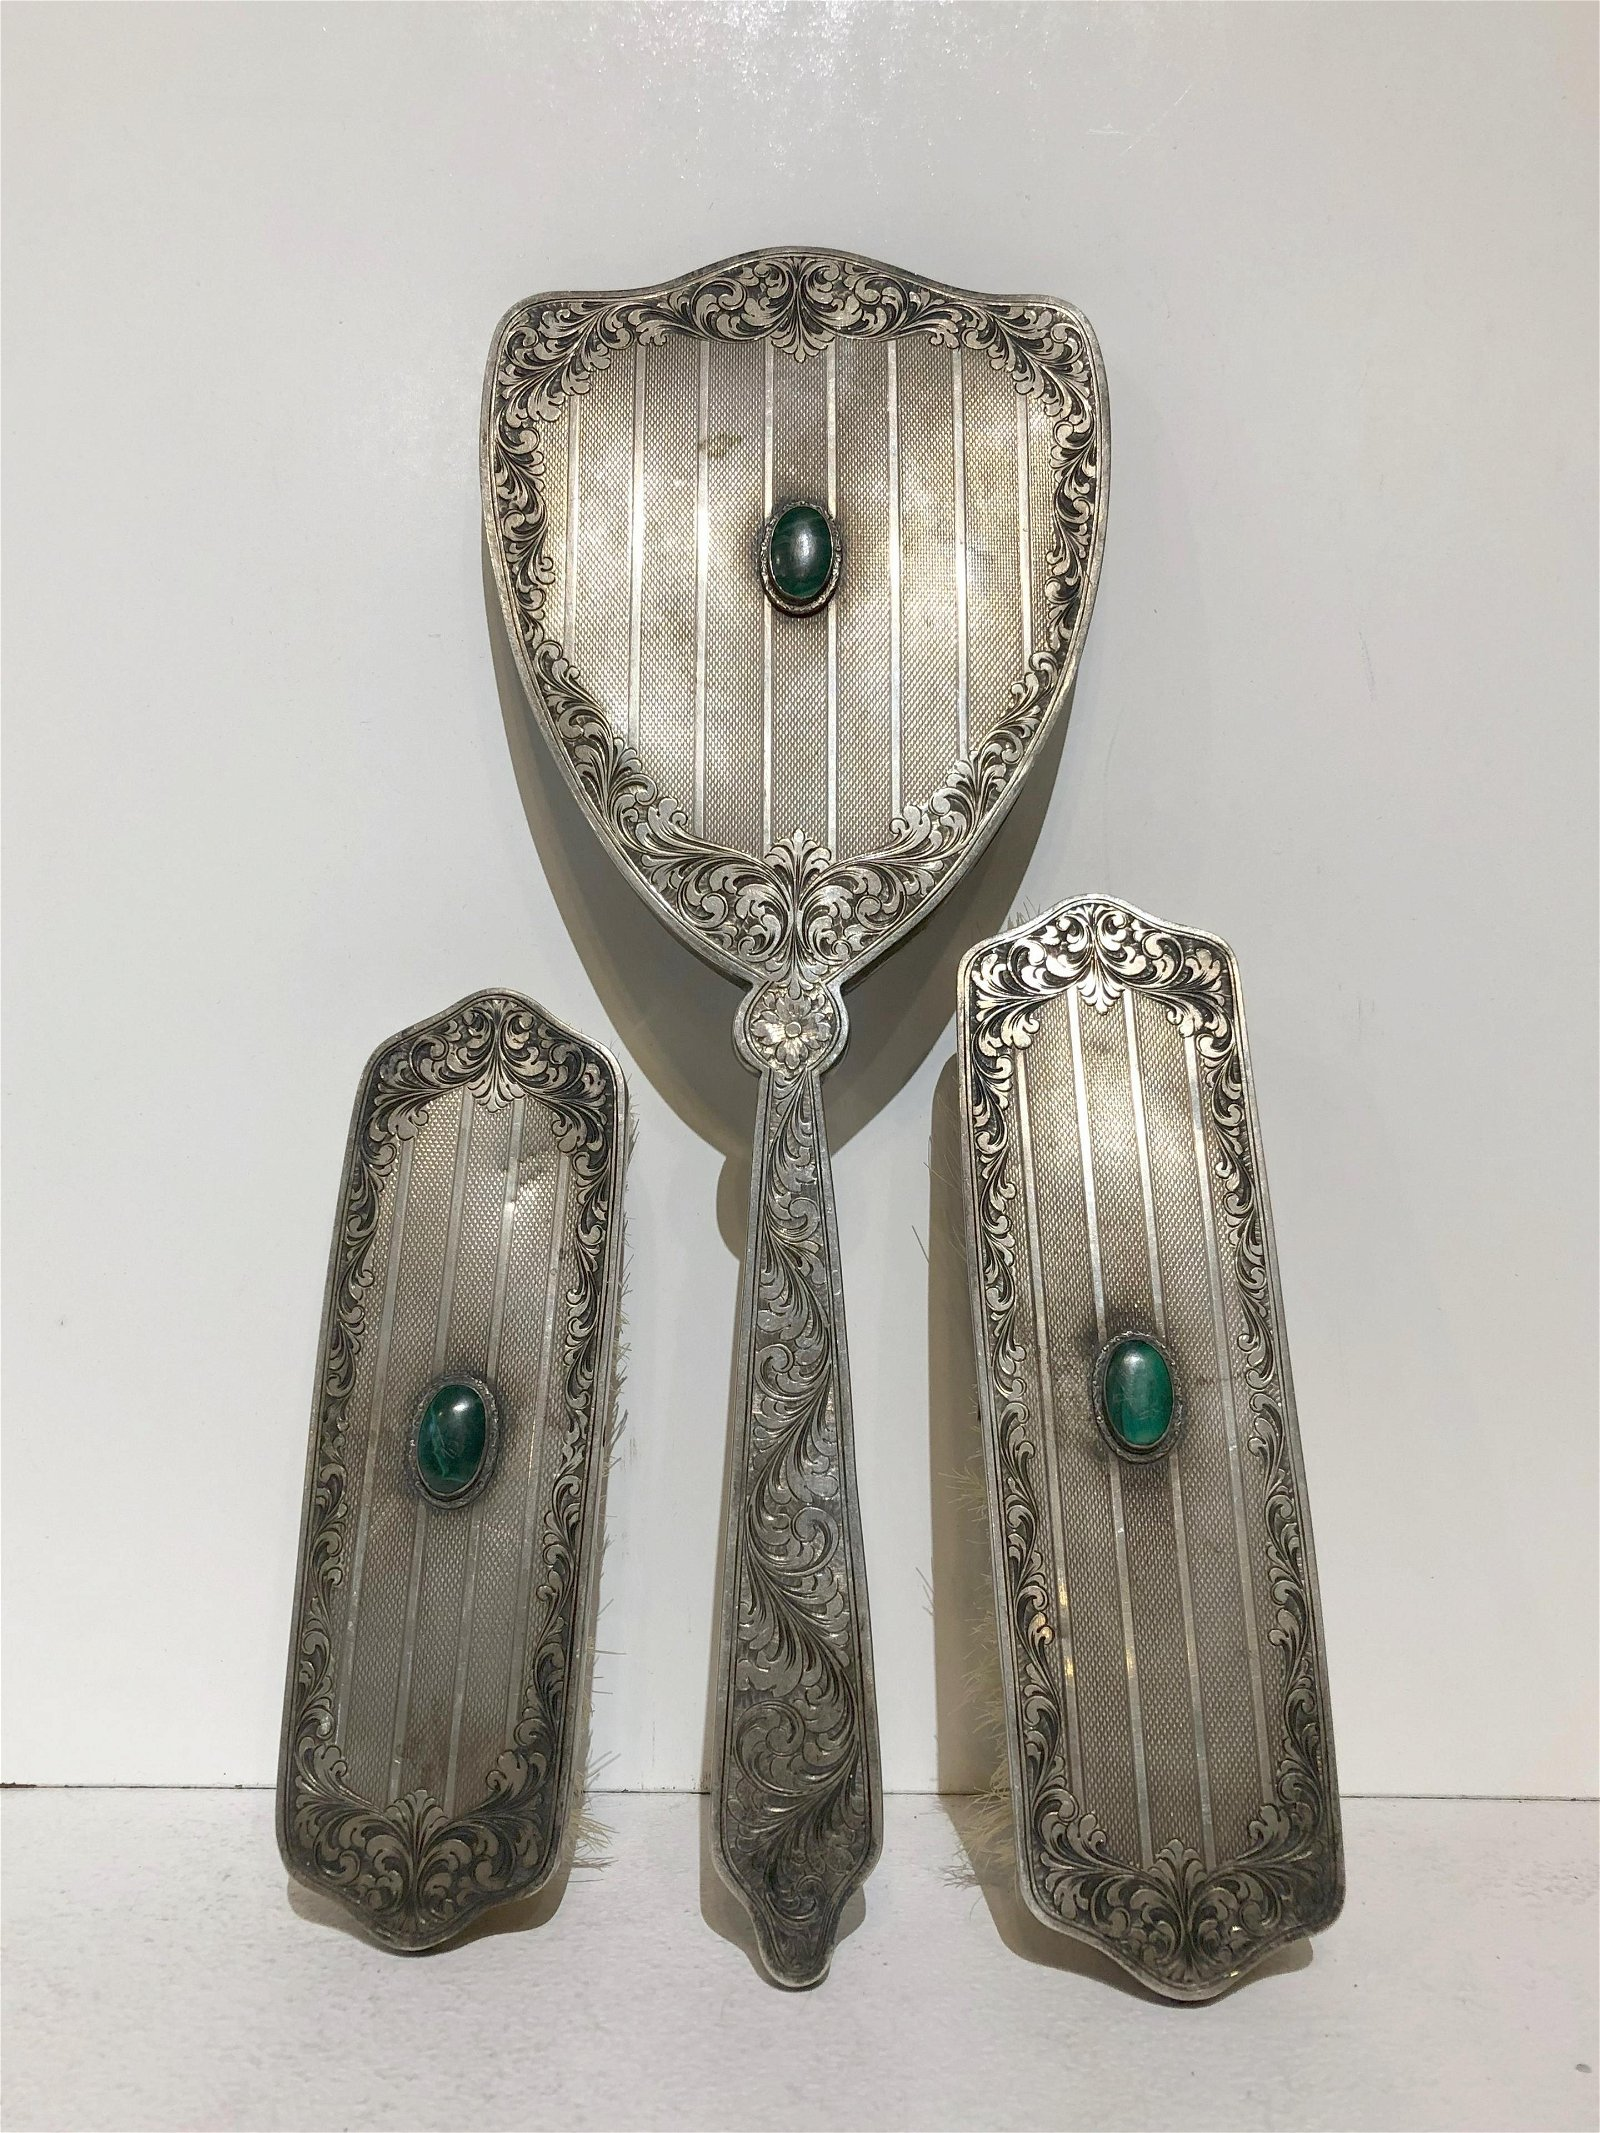 Three Piece Continental Repousse Silver Vanity Set